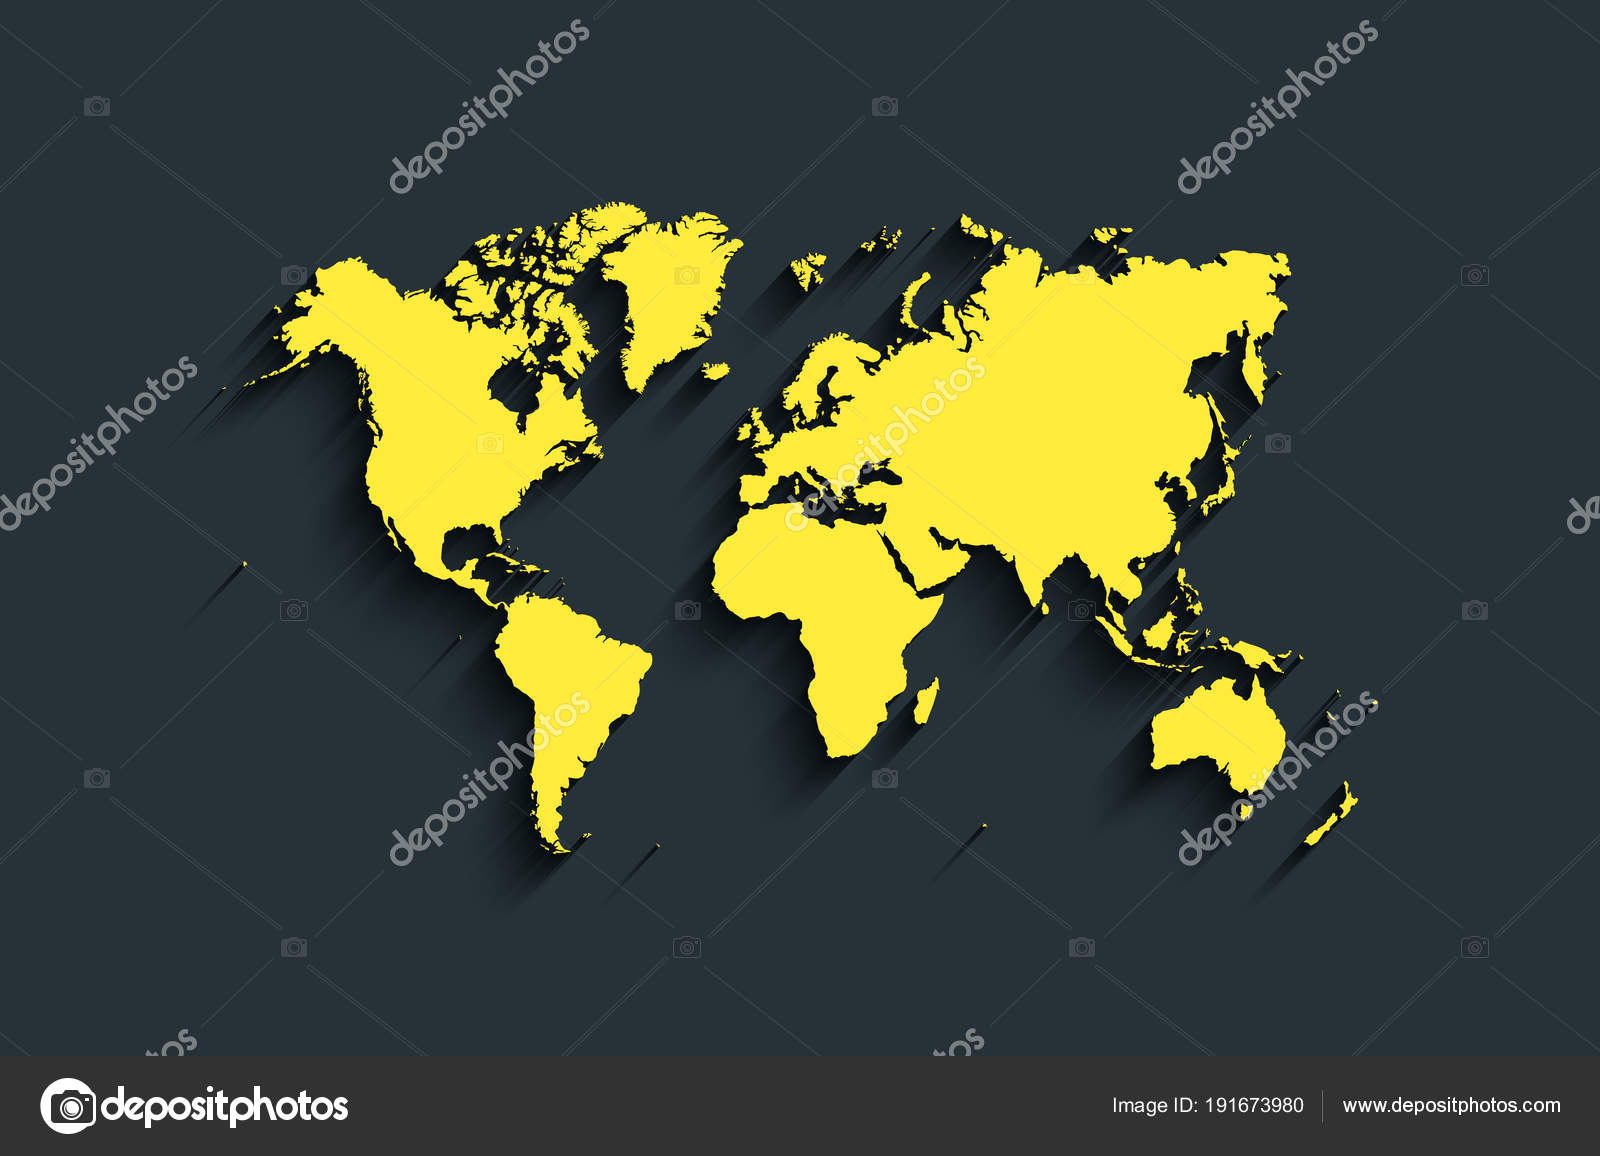 Flat world map abstract vector background for wallpaper stock flat world map abstract vector background for wallpaper stock vector gumiabroncs Image collections